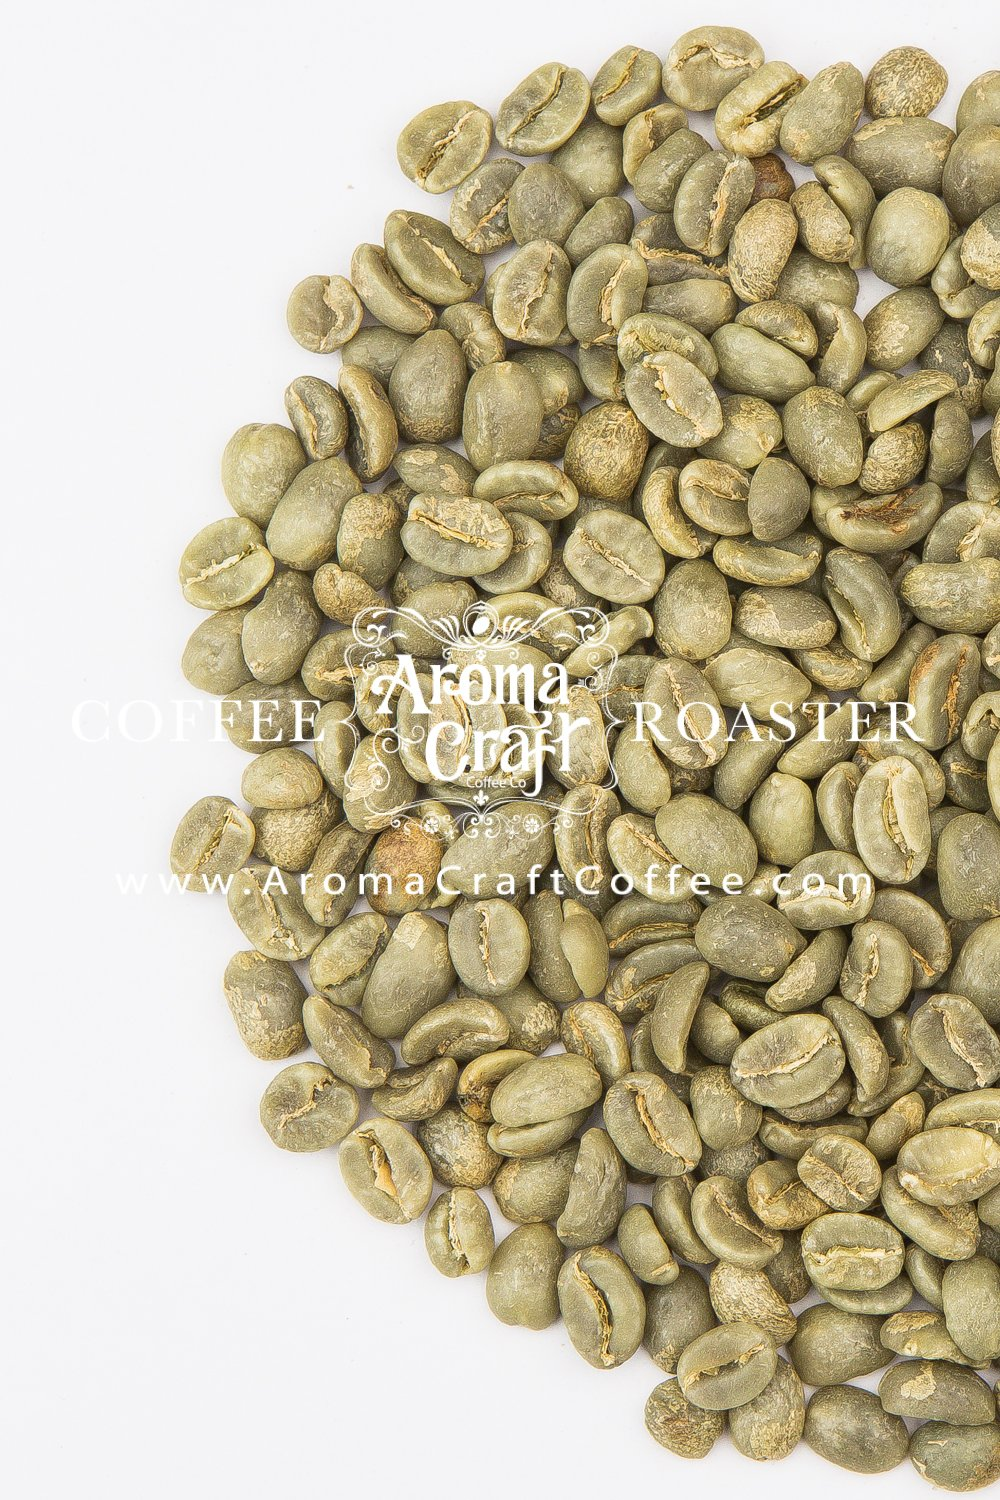 Colombian Narino Supremo Unroasted Green Coffee Beans Caturra WASHED (5 lb) by Aroma Craft Coffee